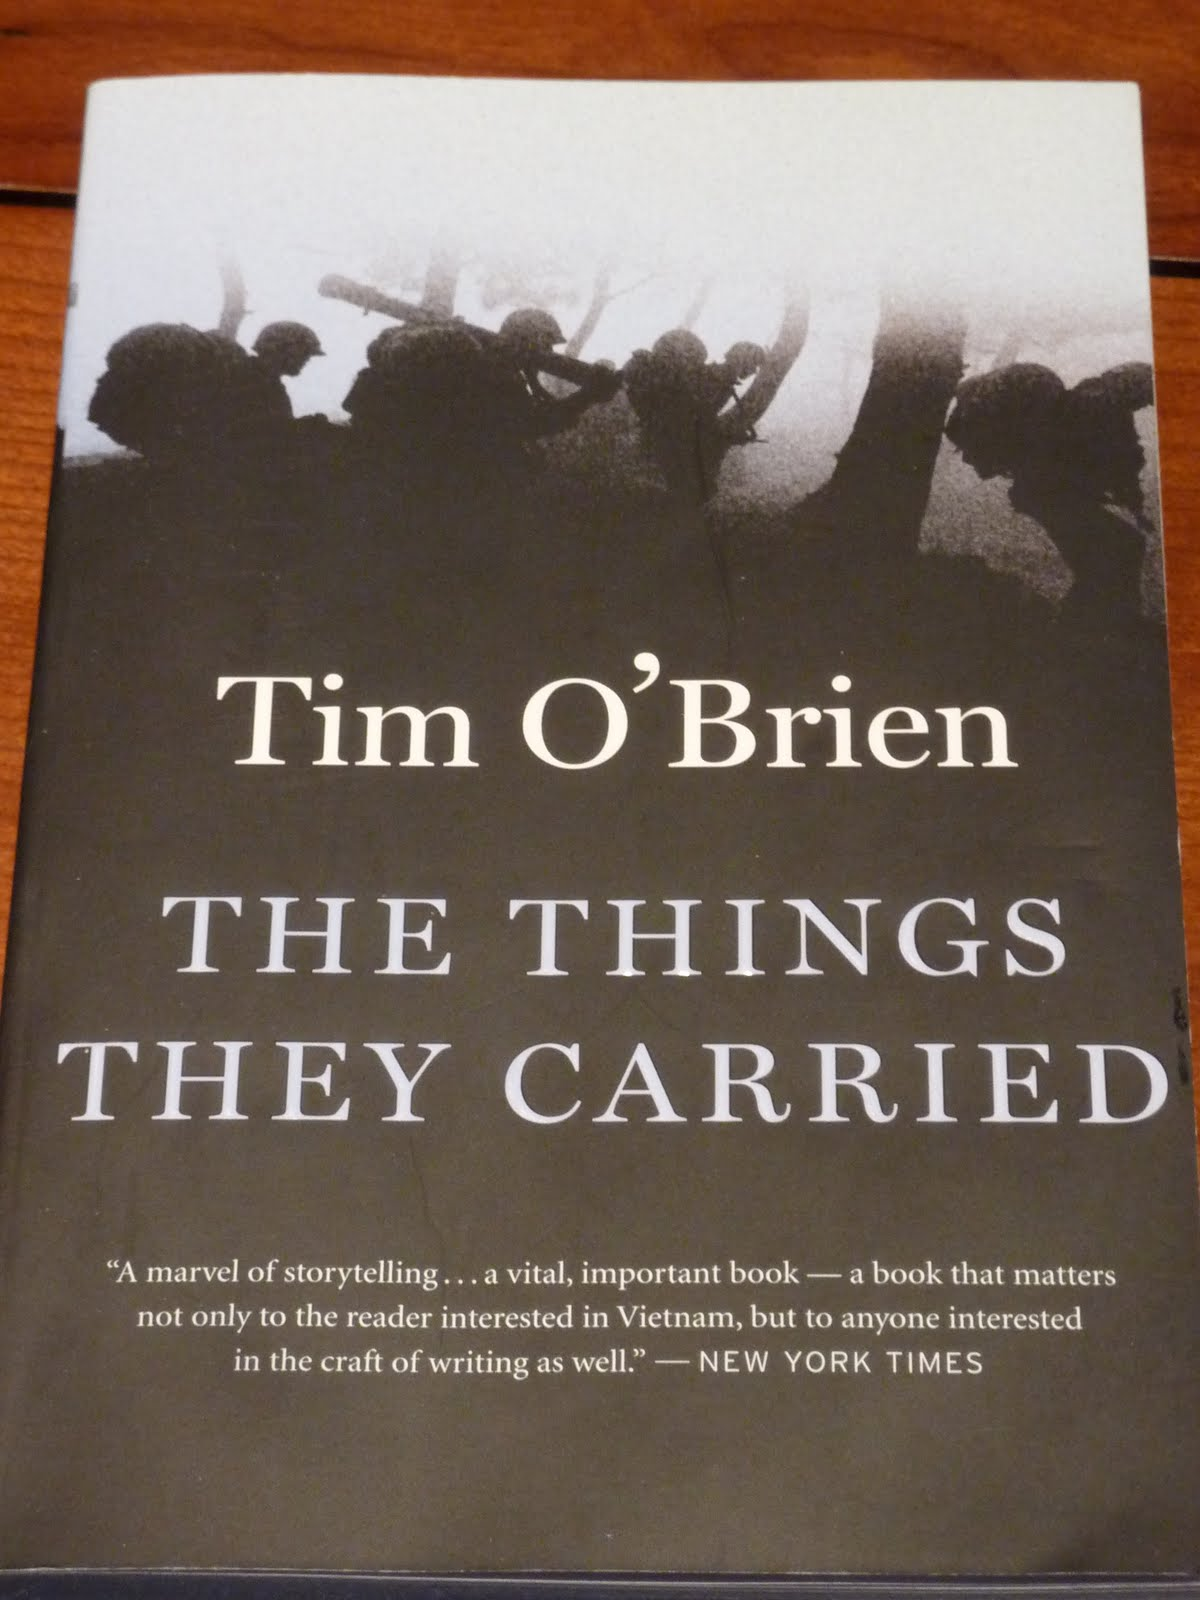 an analysis of the novel the things they carried by tim obrien In the novel the things they carried by tim o'brien the author tells about his experiences in the vietnam war by telling various war stories the quote, it has been said of war that it is a world where the past has a strong grip on the present, where machines seemed sometimes to have more will.